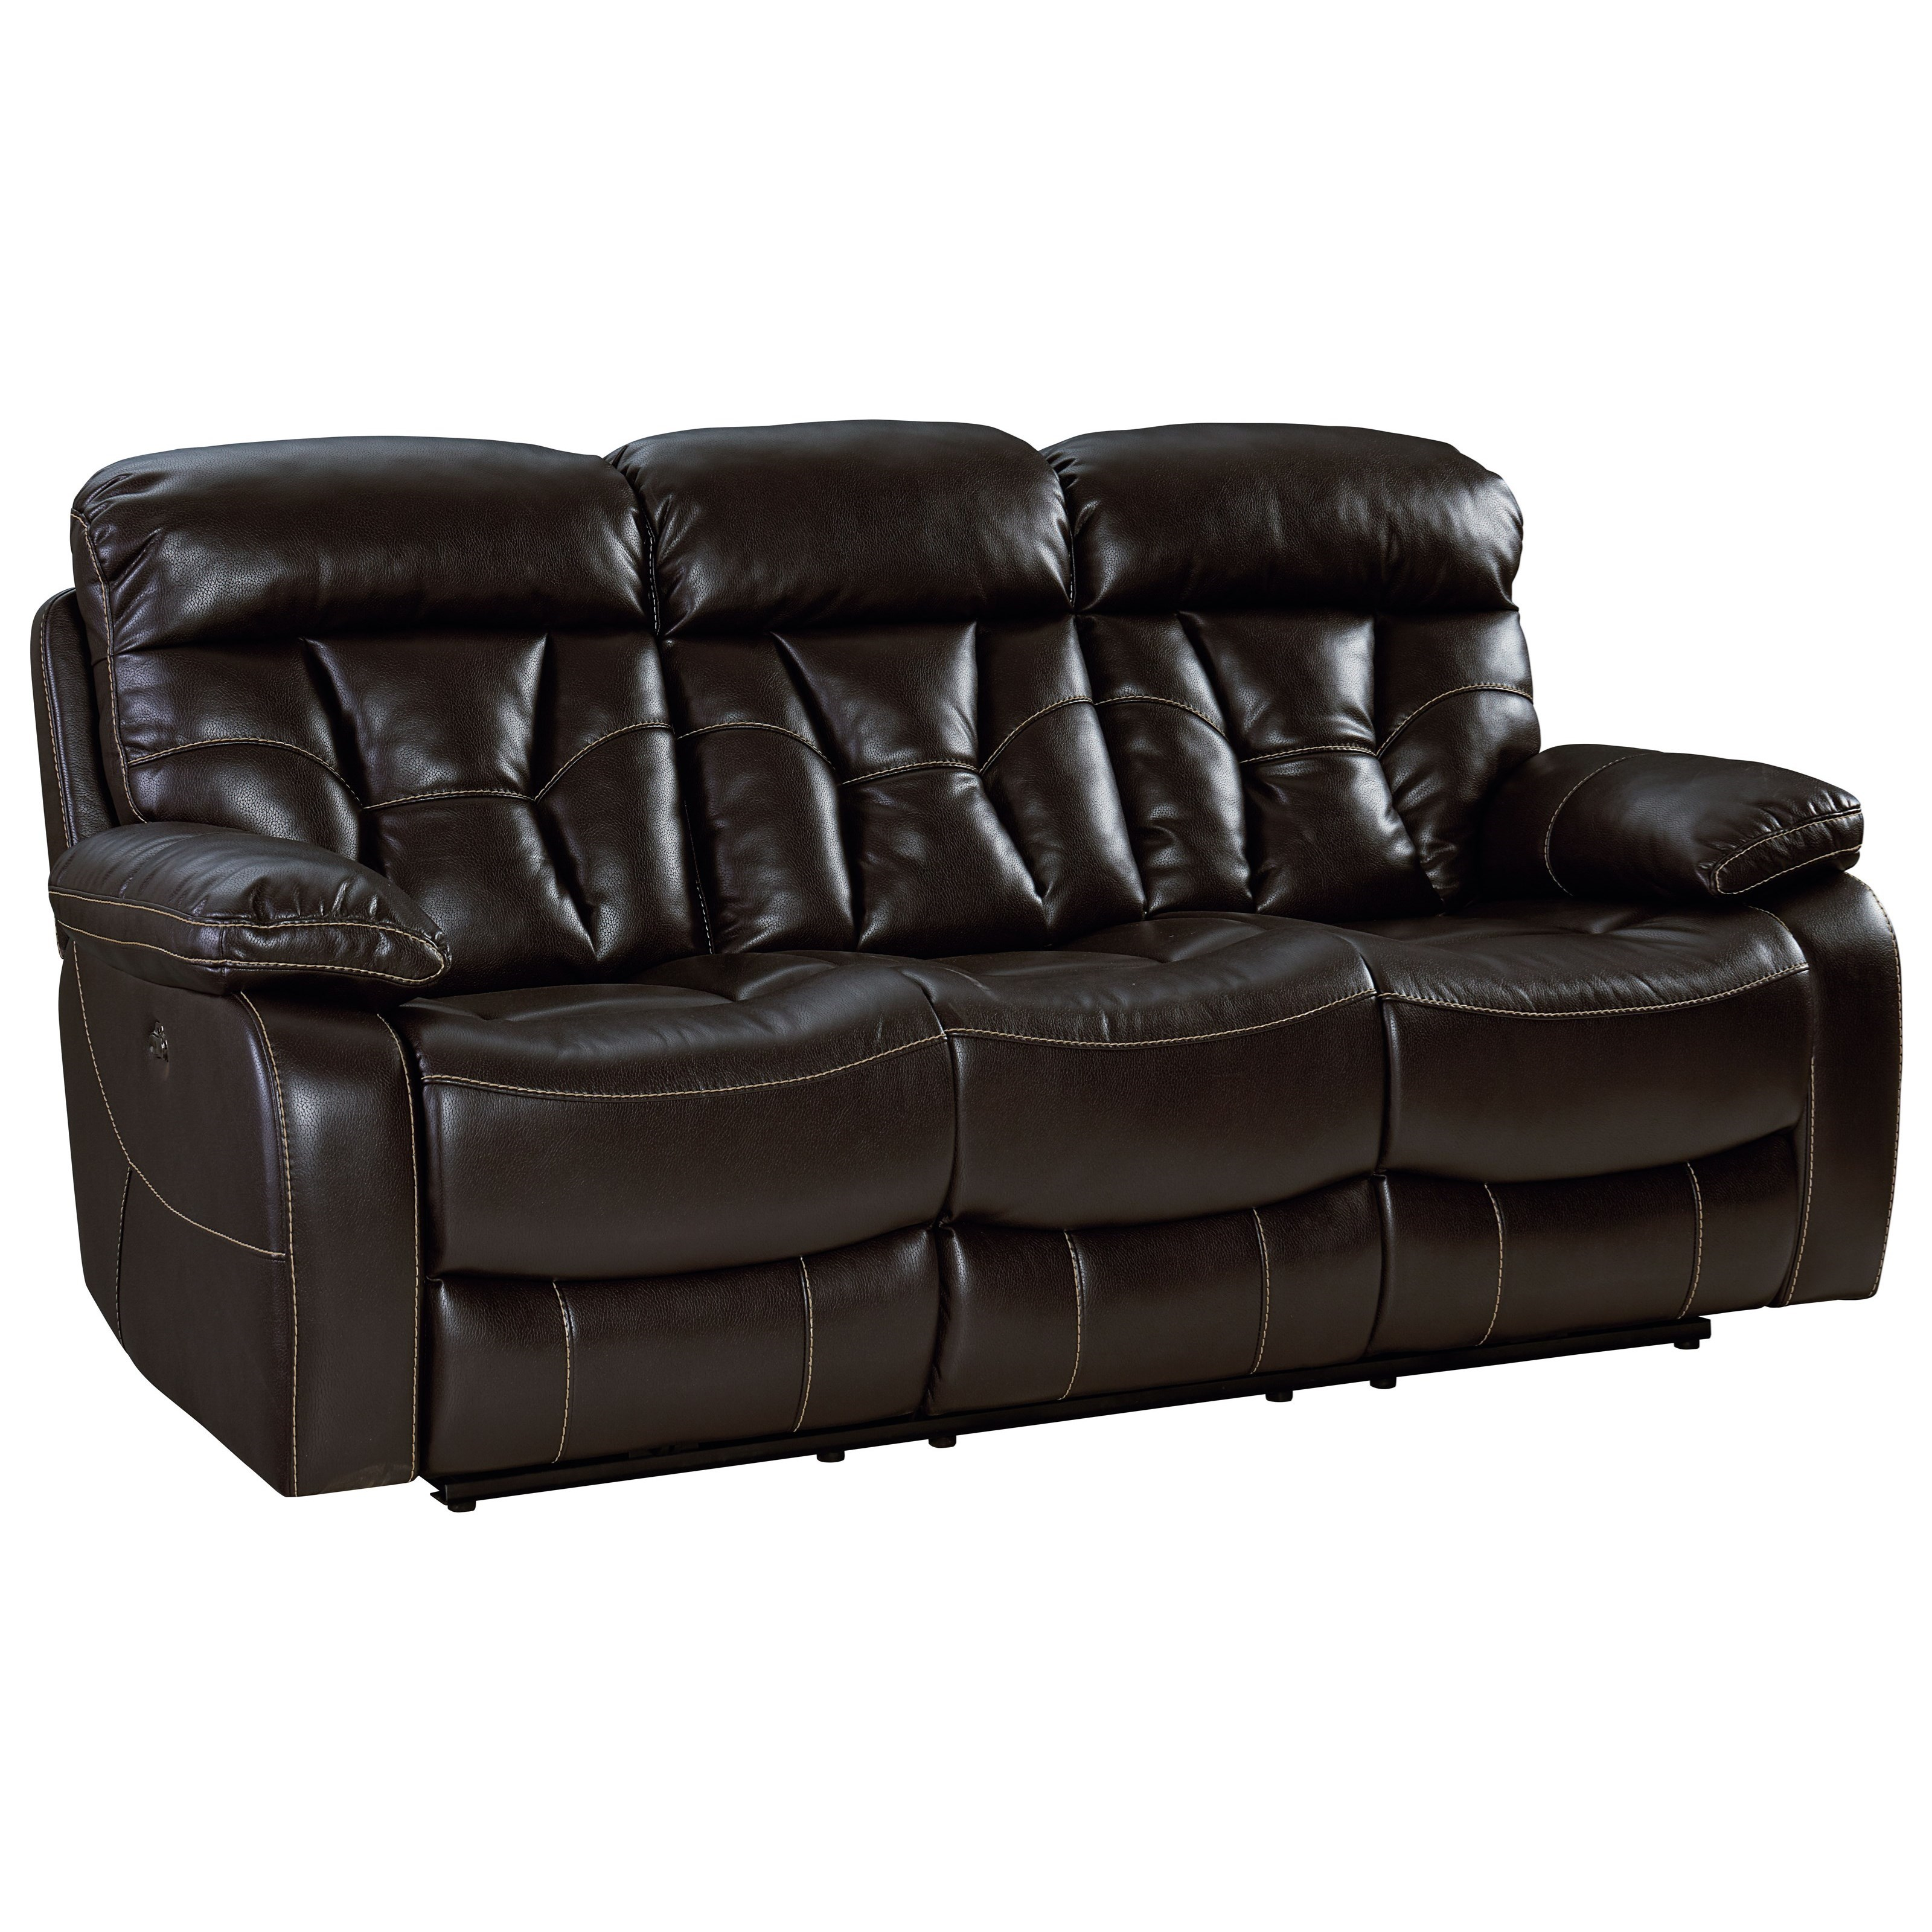 sofa mart peoria il semi circle suppliers zenith 4150961 reclining with pillow arms and